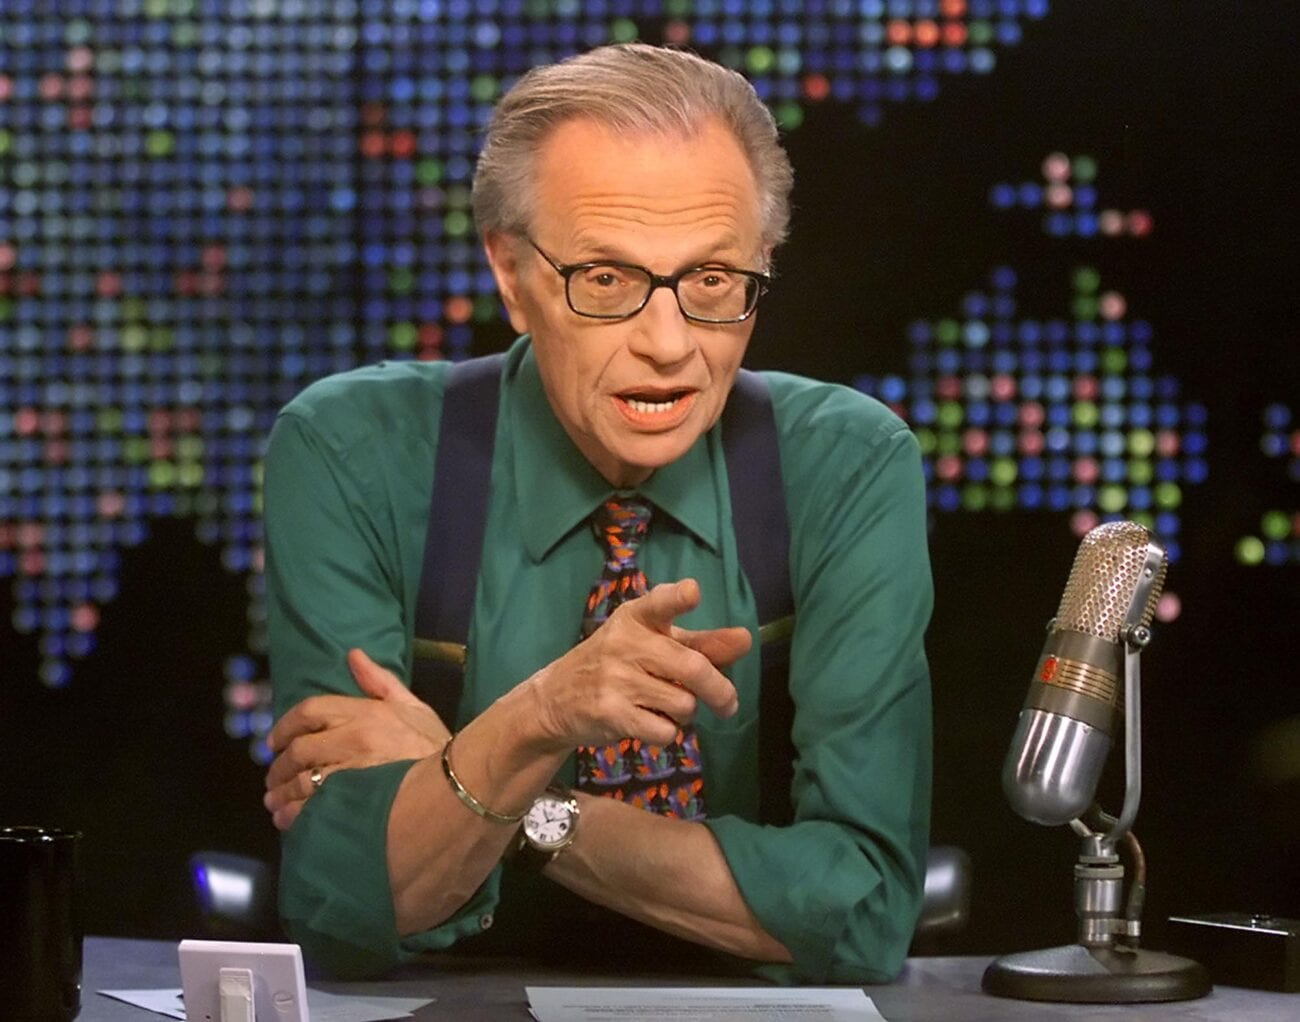 No matter how many times you've been married, odds are Larry King had more spouses than you. Learn about the famous broadcaster's expansive marital history!